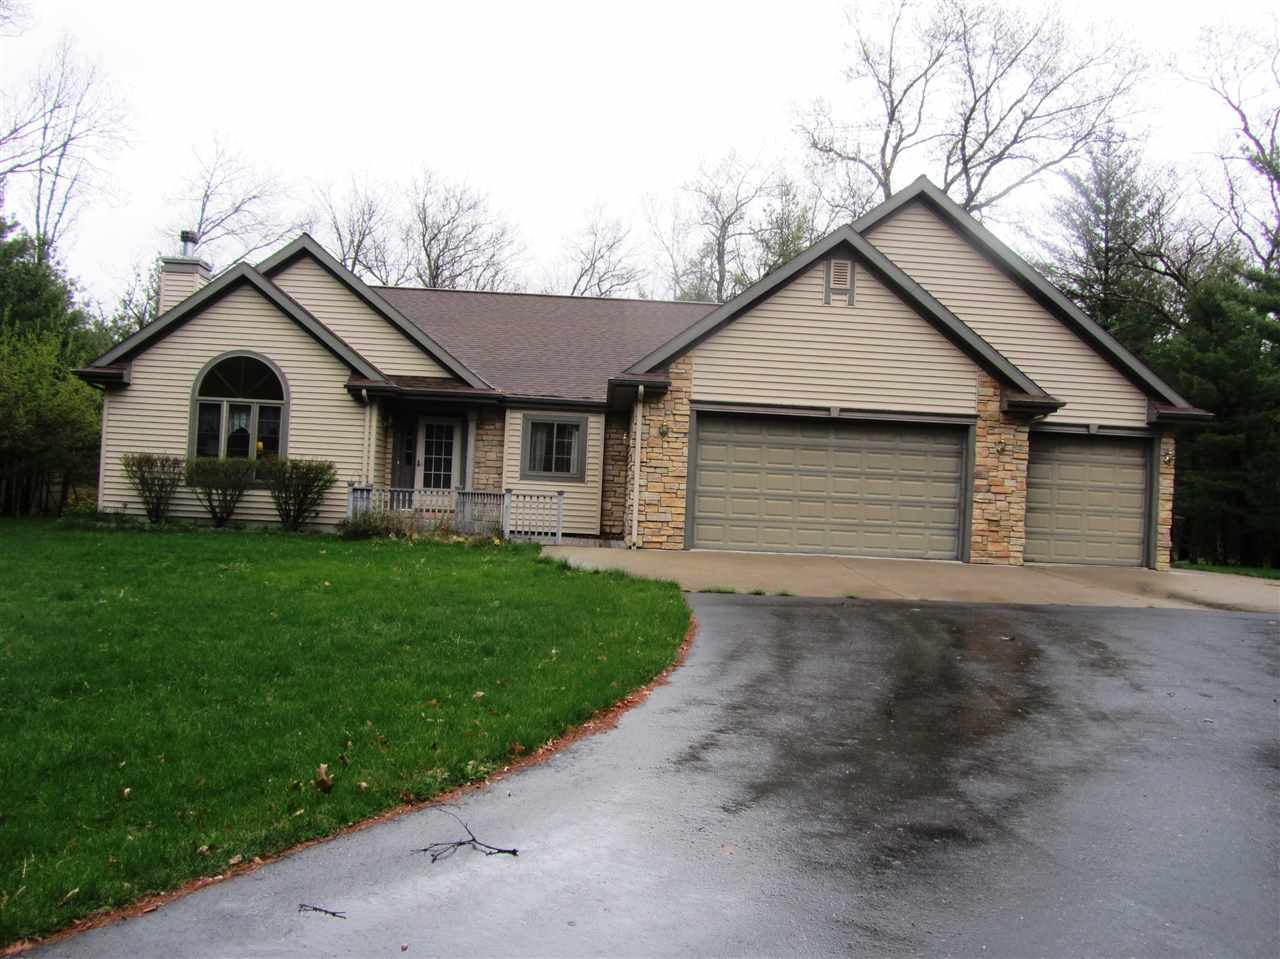 2440 9th Dr, Easton, WI 53910